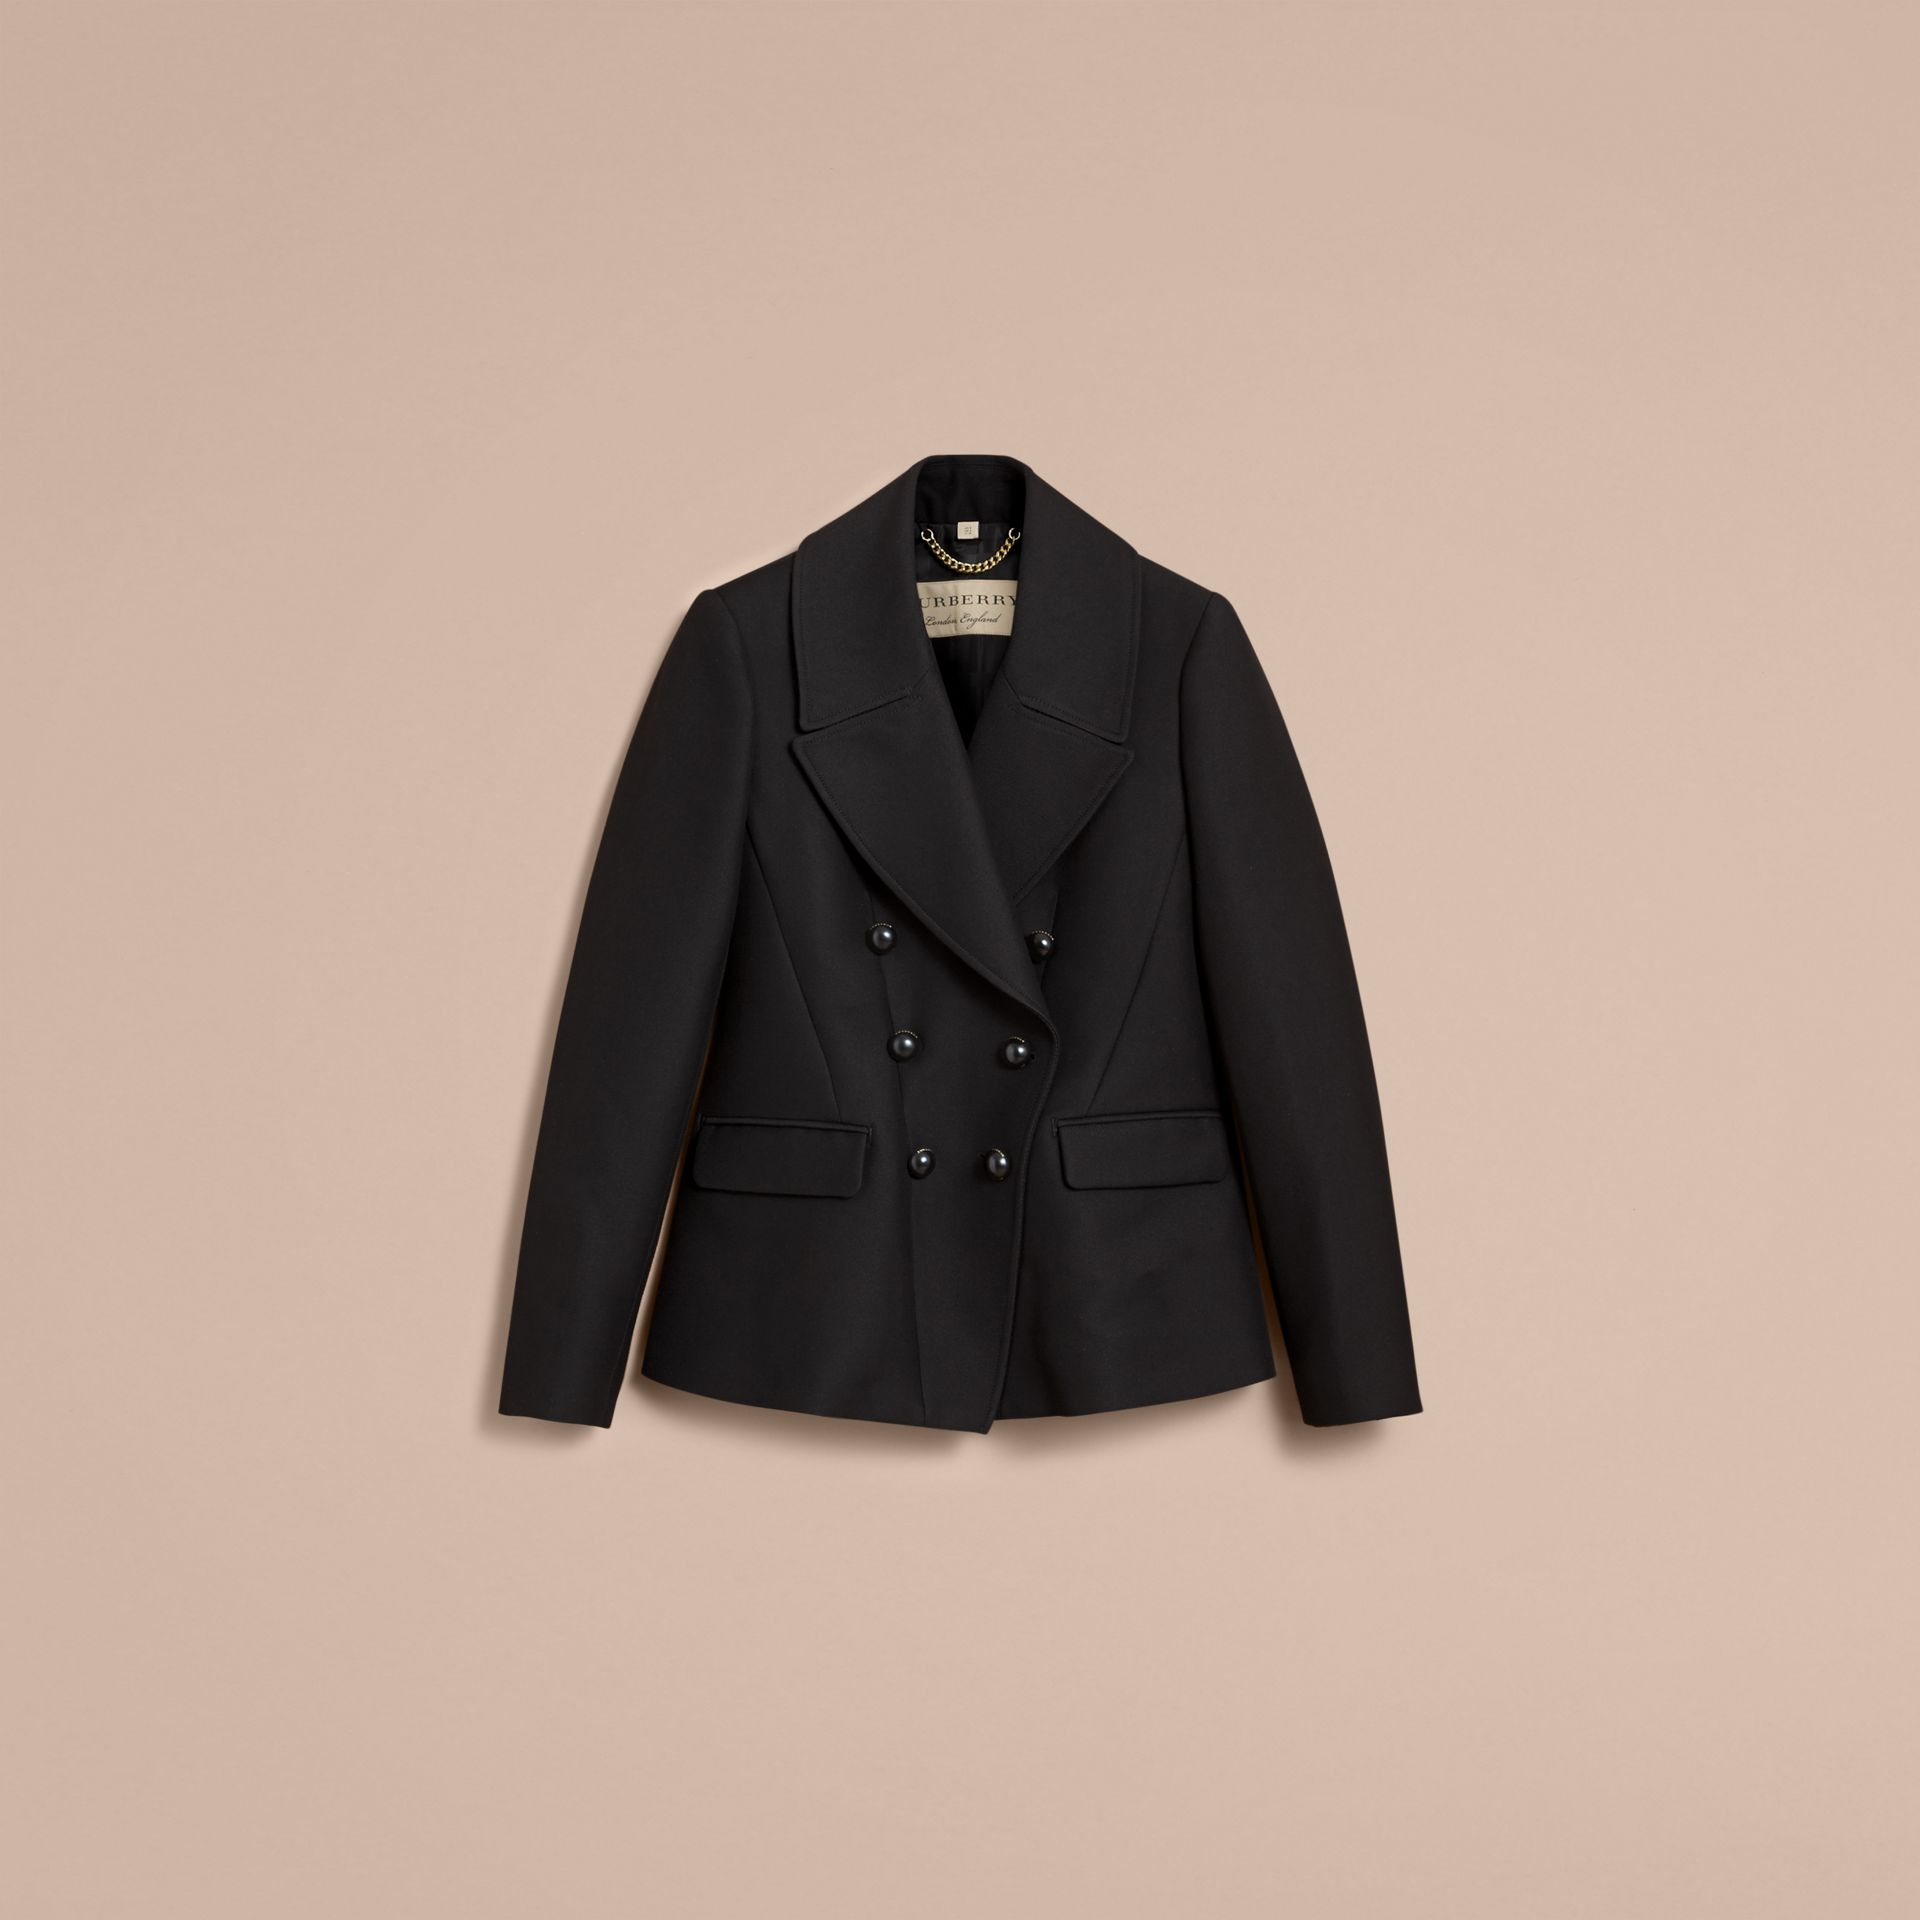 Wool Cotton Blend Tailored Double-breasted Jacket - Women | Burberry - gallery image 4